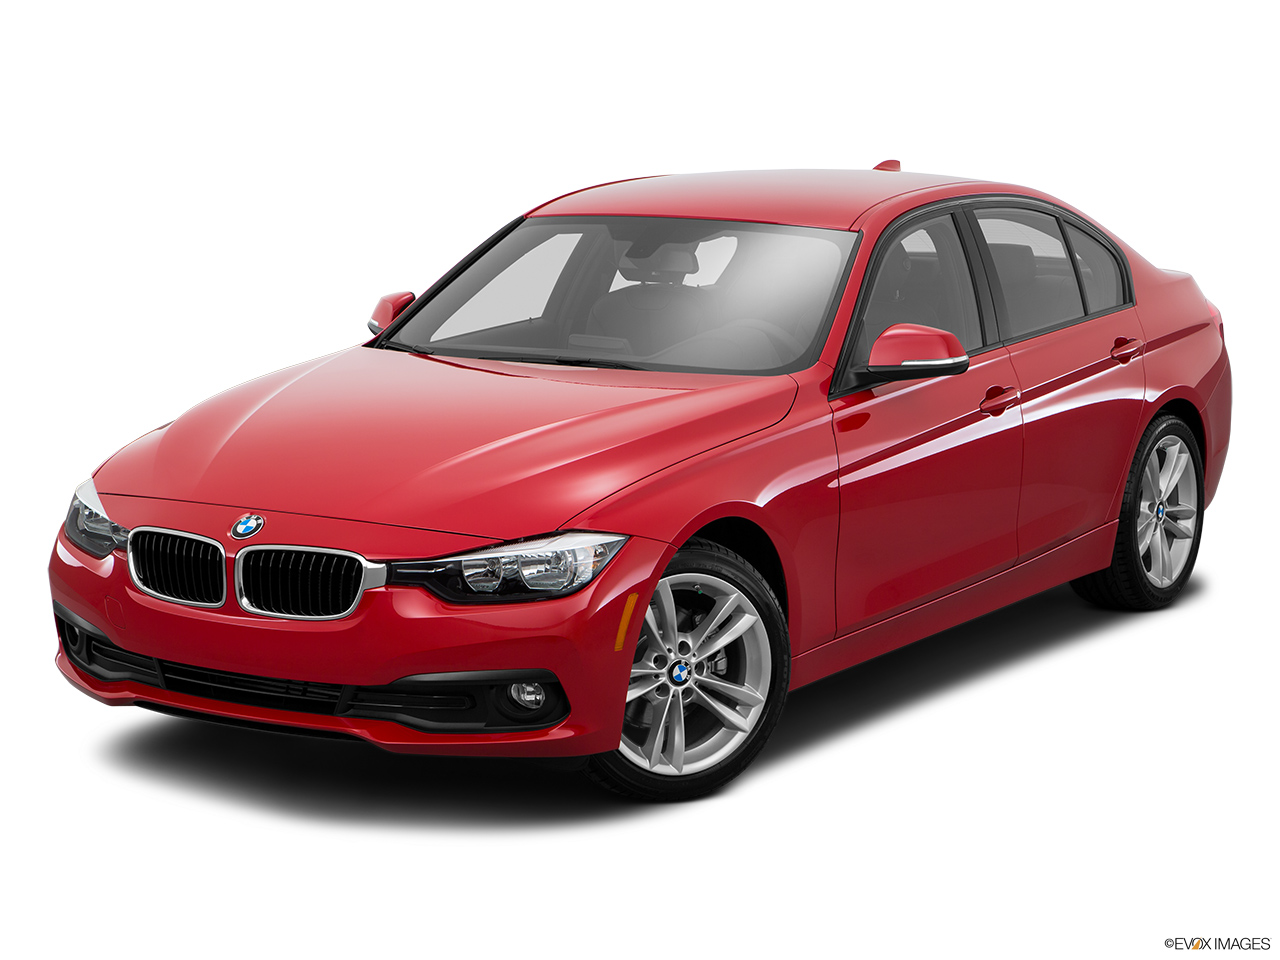 car features list for bmw 3 series 2016 320i oman yallamotor. Black Bedroom Furniture Sets. Home Design Ideas